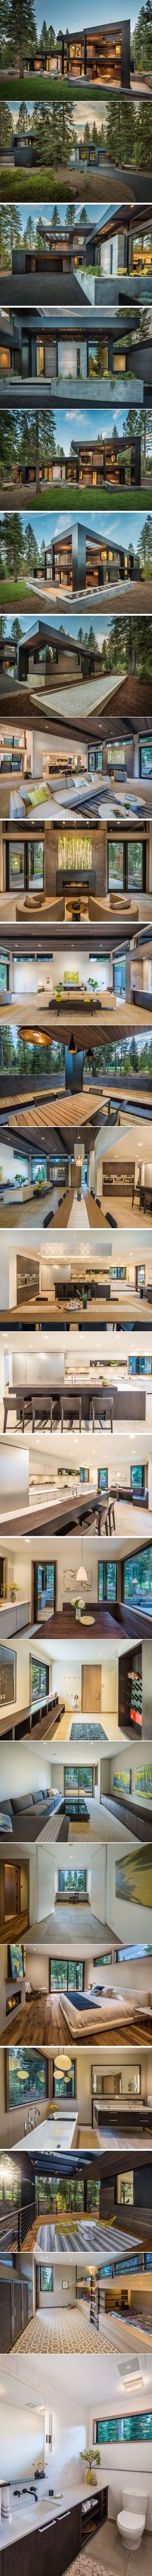 This New California House Makes Itself At Home In The Forest | CONTEMPORIST